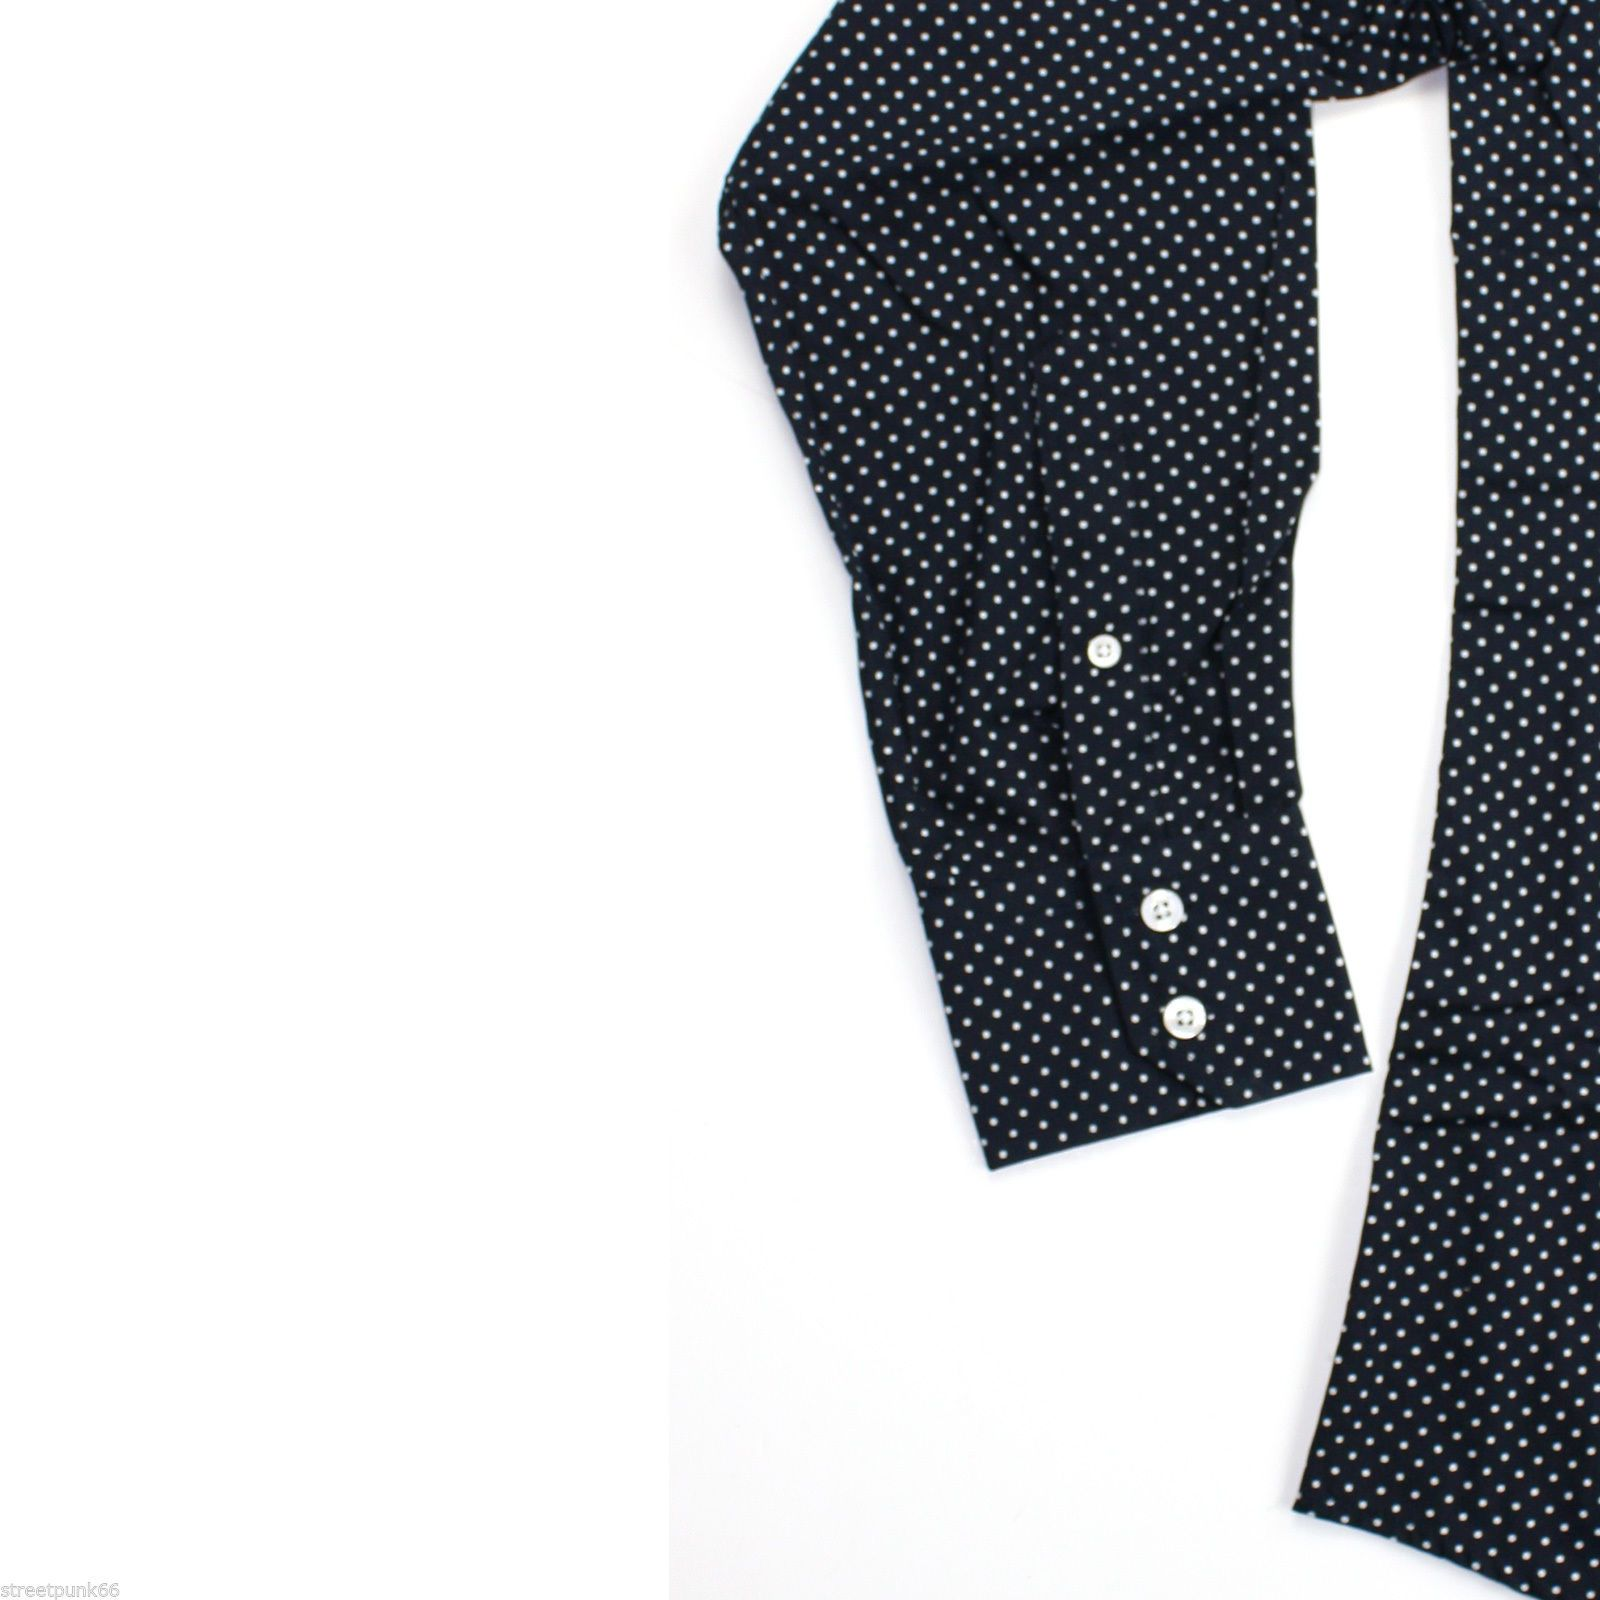 Relco Mens Navy Pin Dot Button Down Long Sleeved Shirt Mod Skin Retro 60s 70s